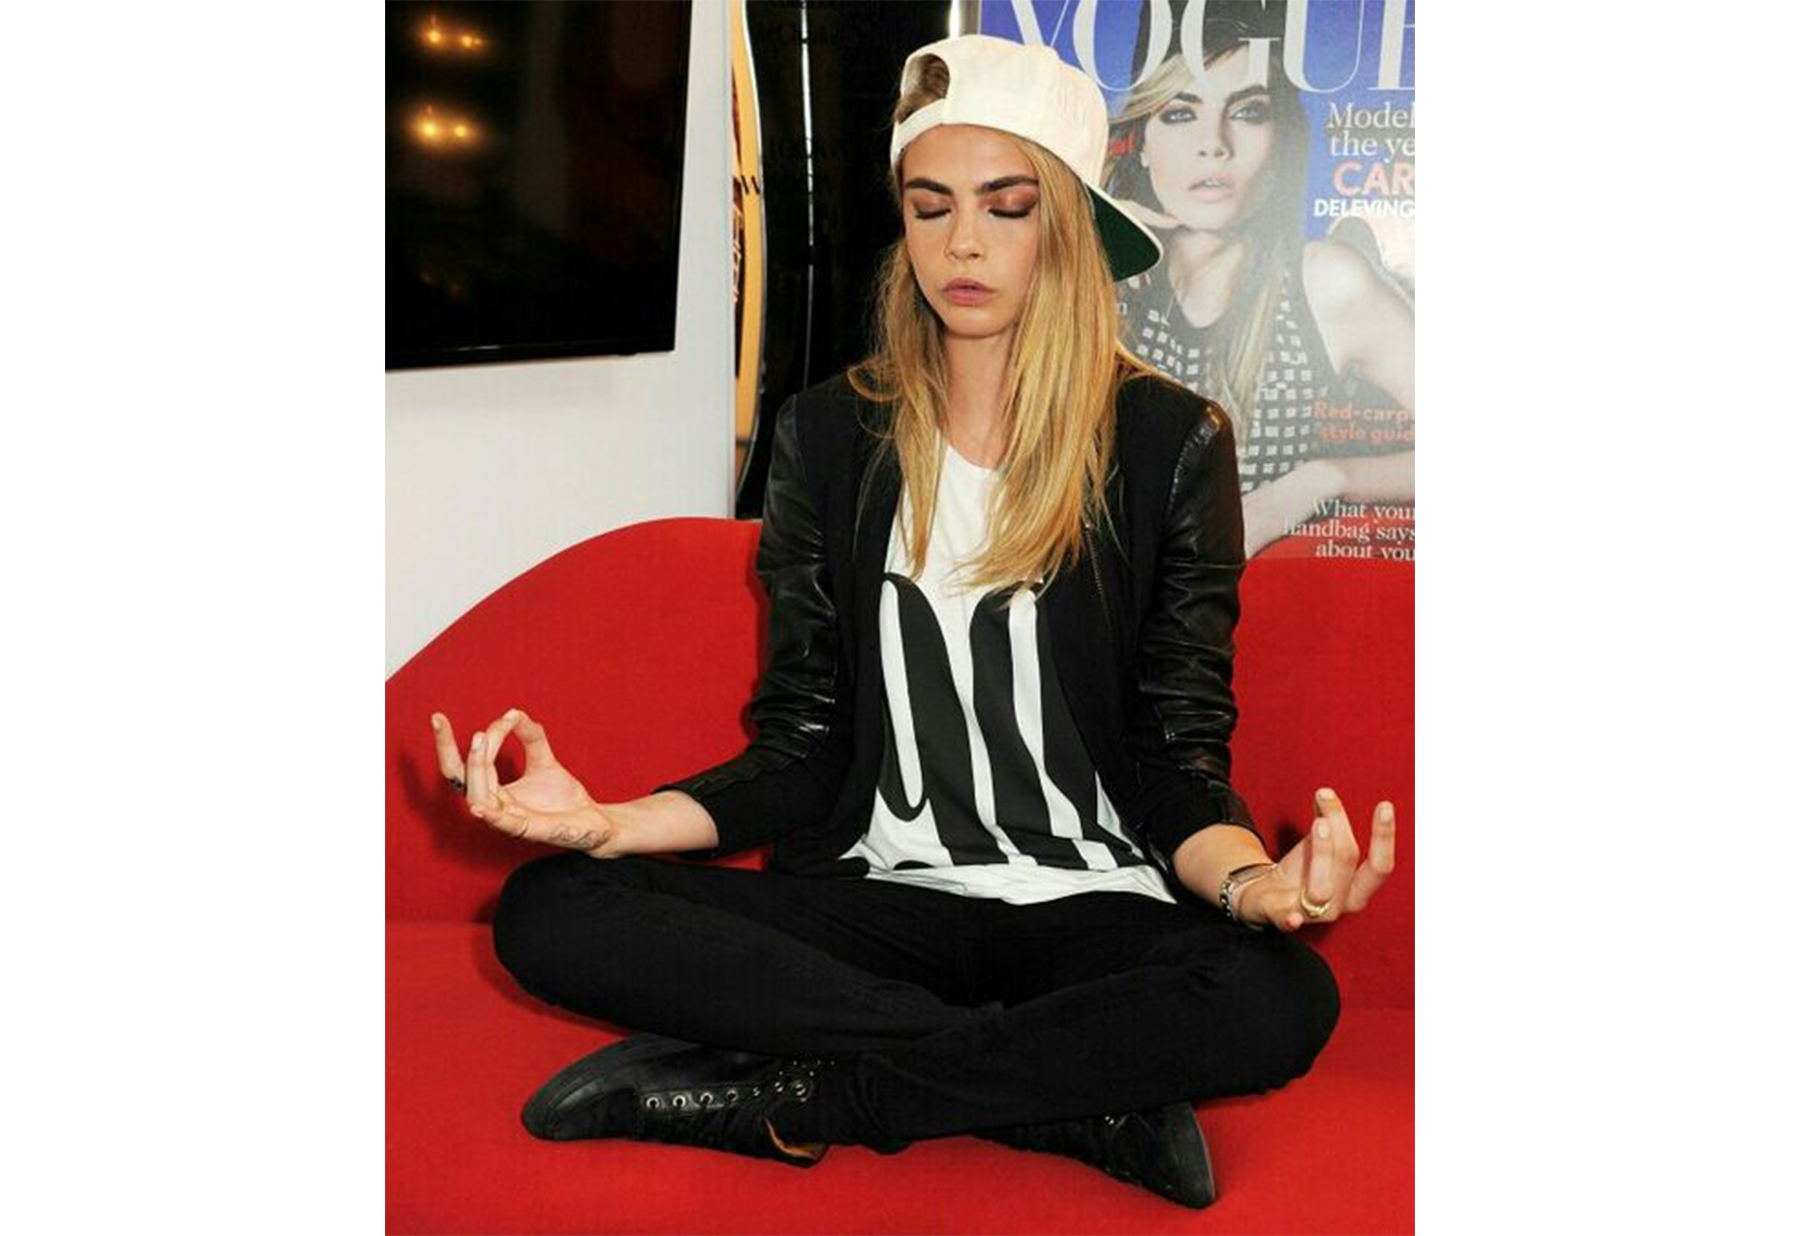 Cara Delevingne Practices Yoga to Cope With Depression